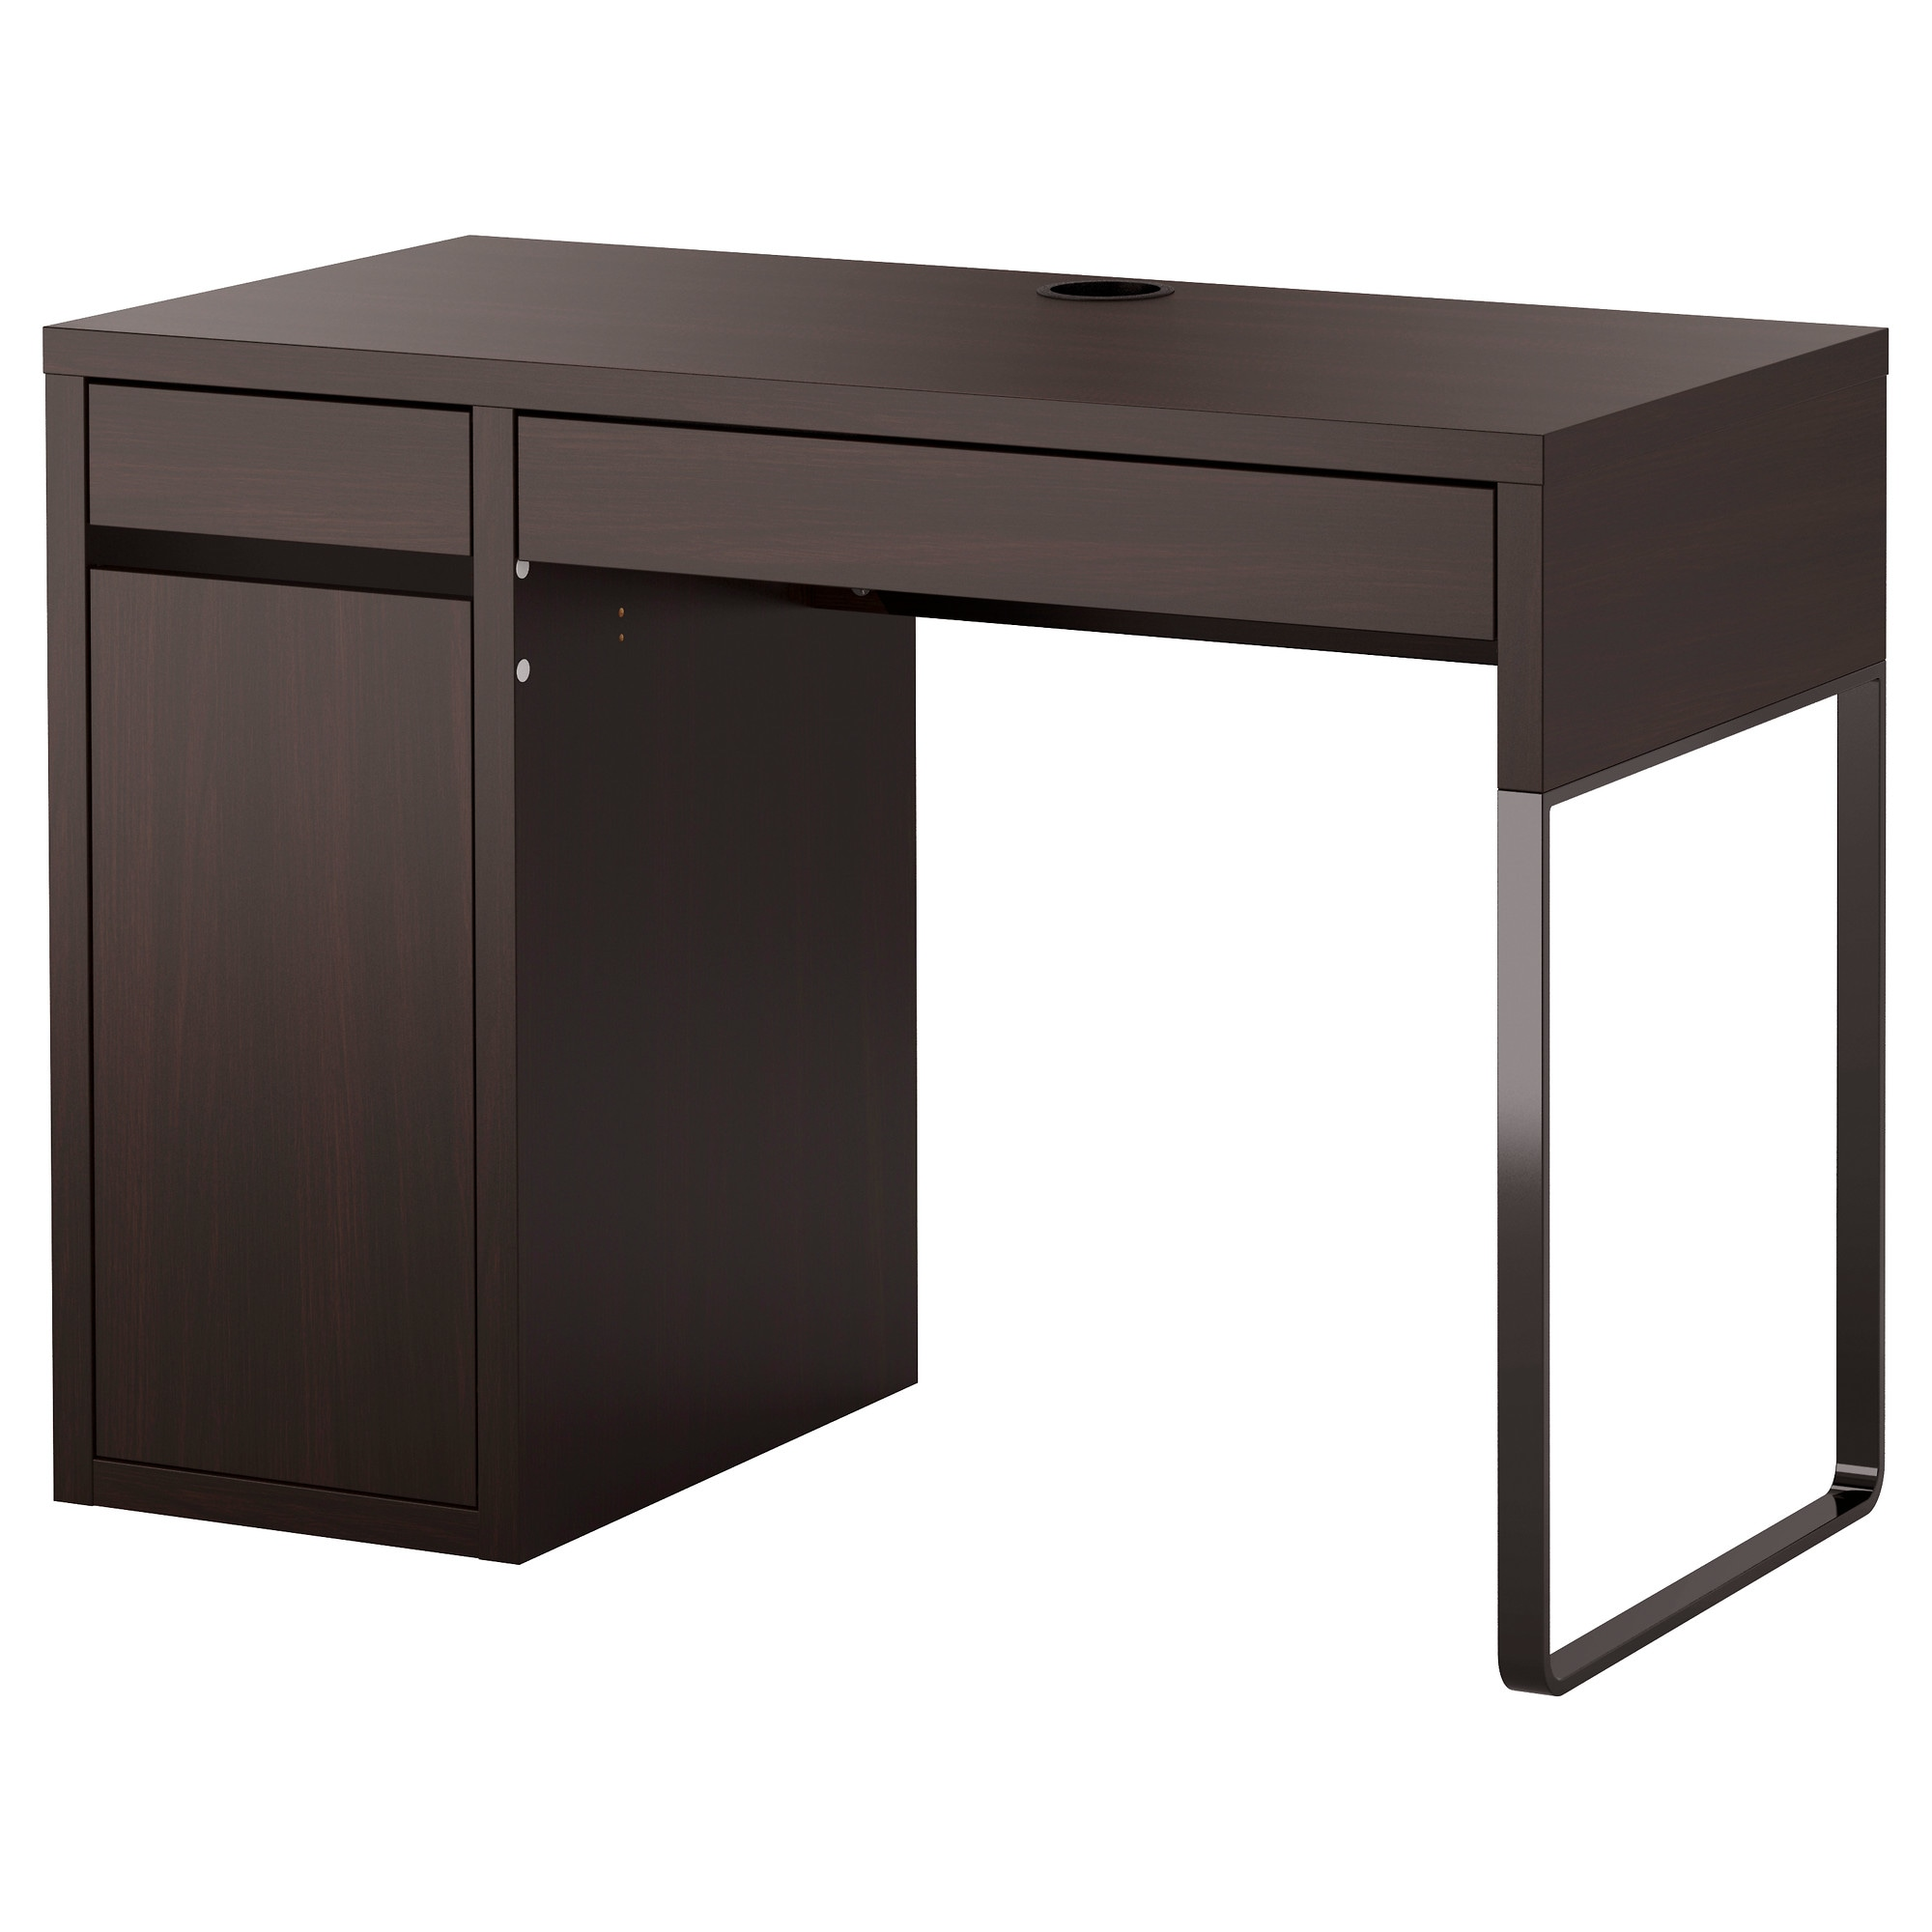 Desk Simple Stunning Micke Desk  Blackbrown  Ikea Design Ideas